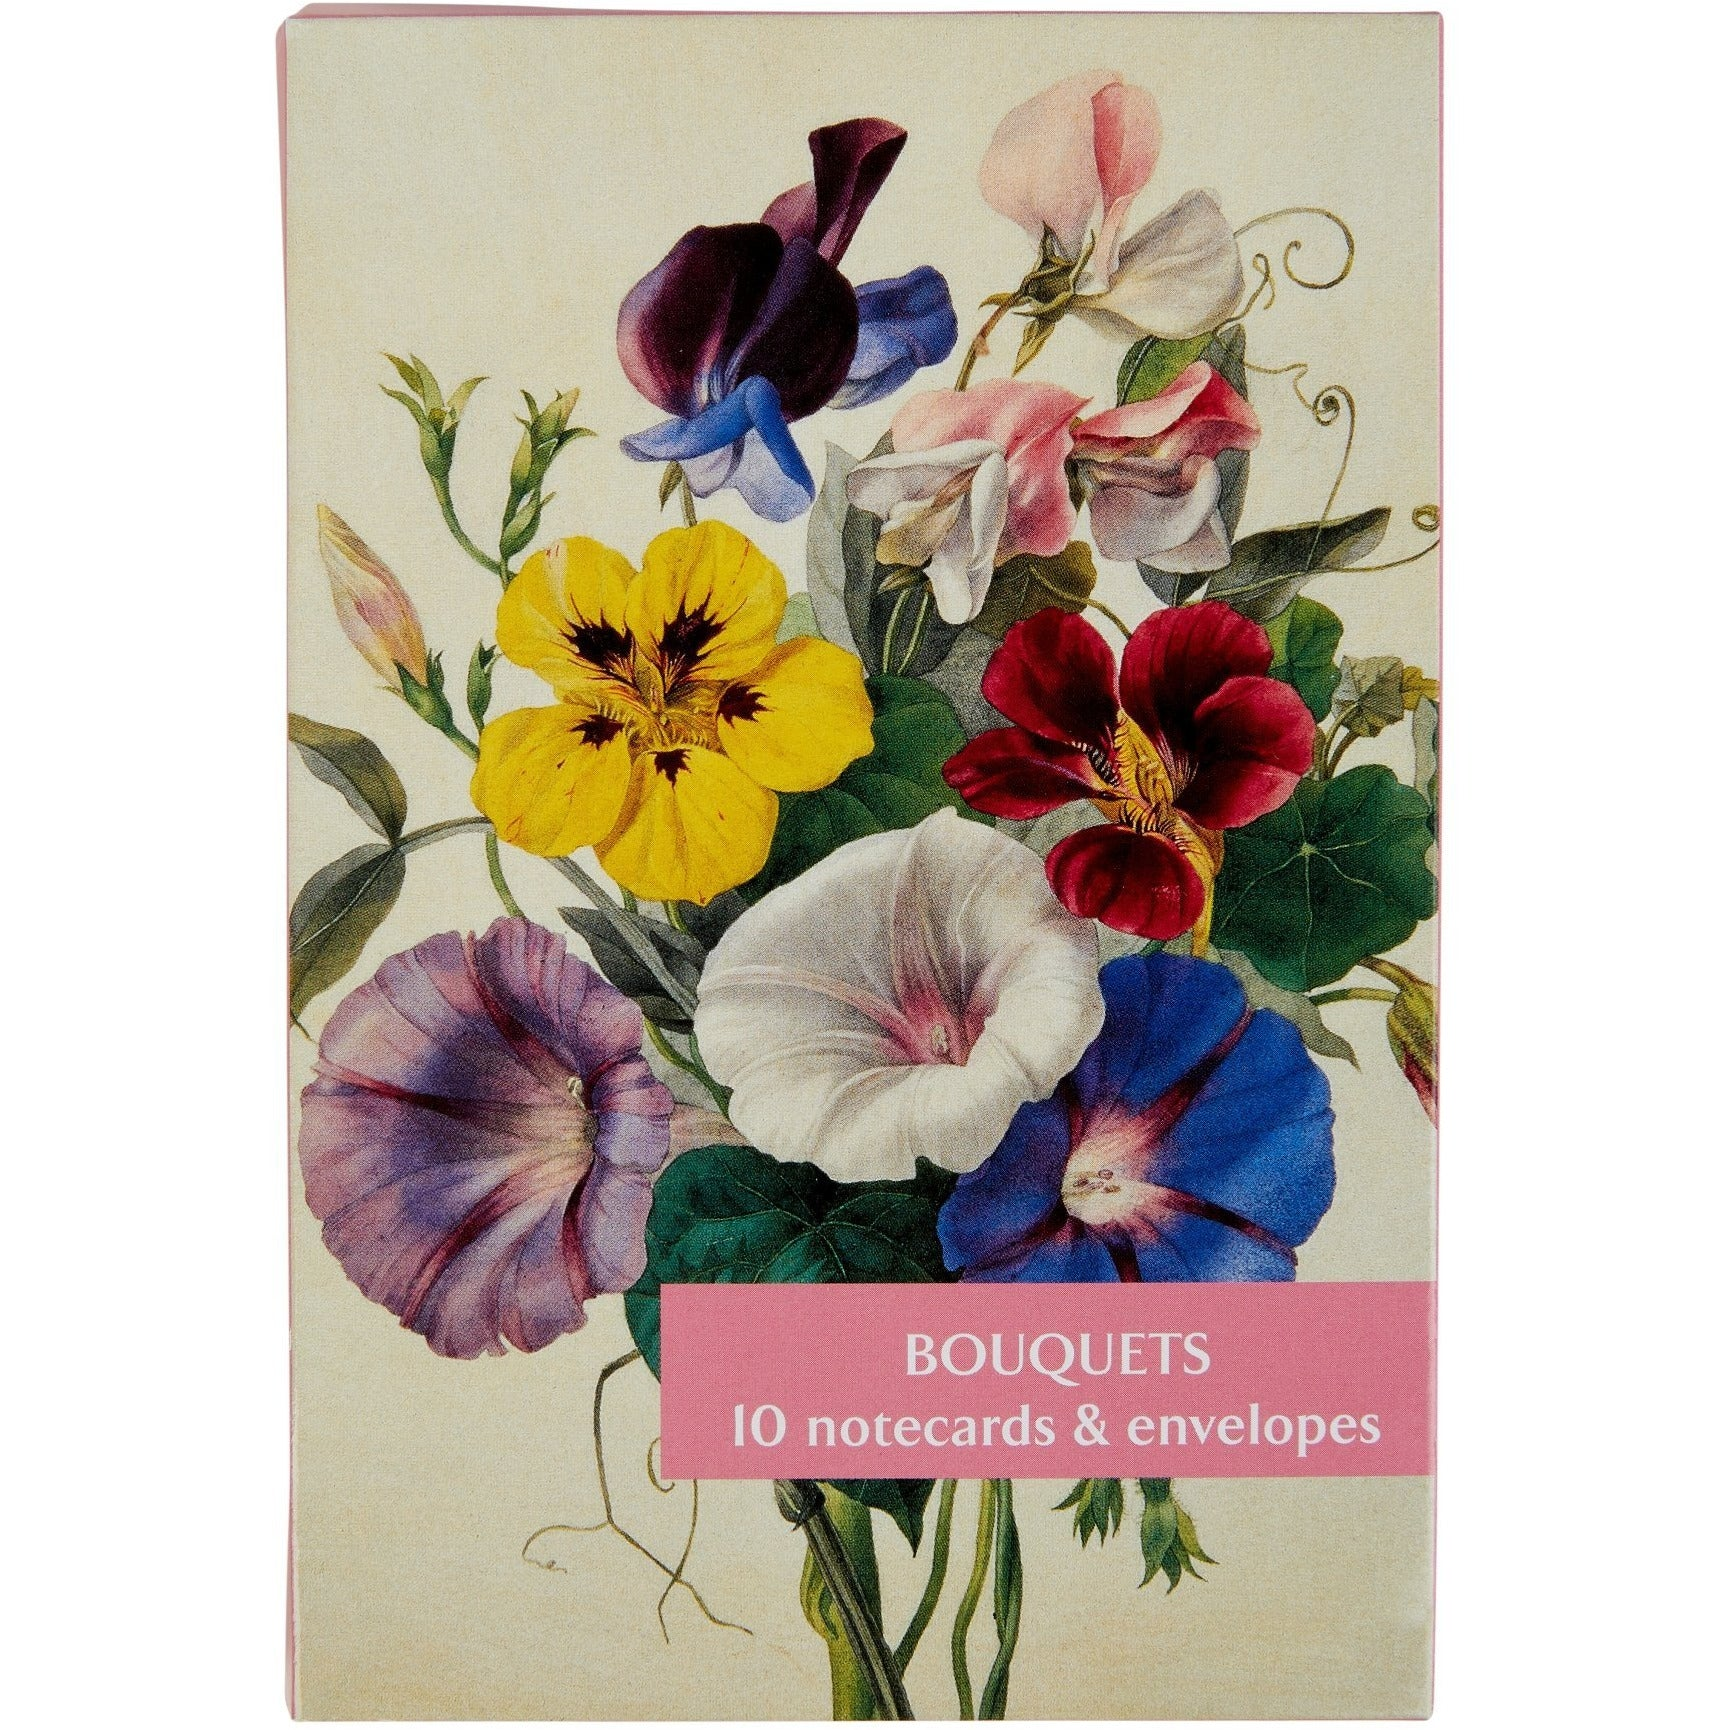 Featured image for the project: Bouquets - Notecard pack